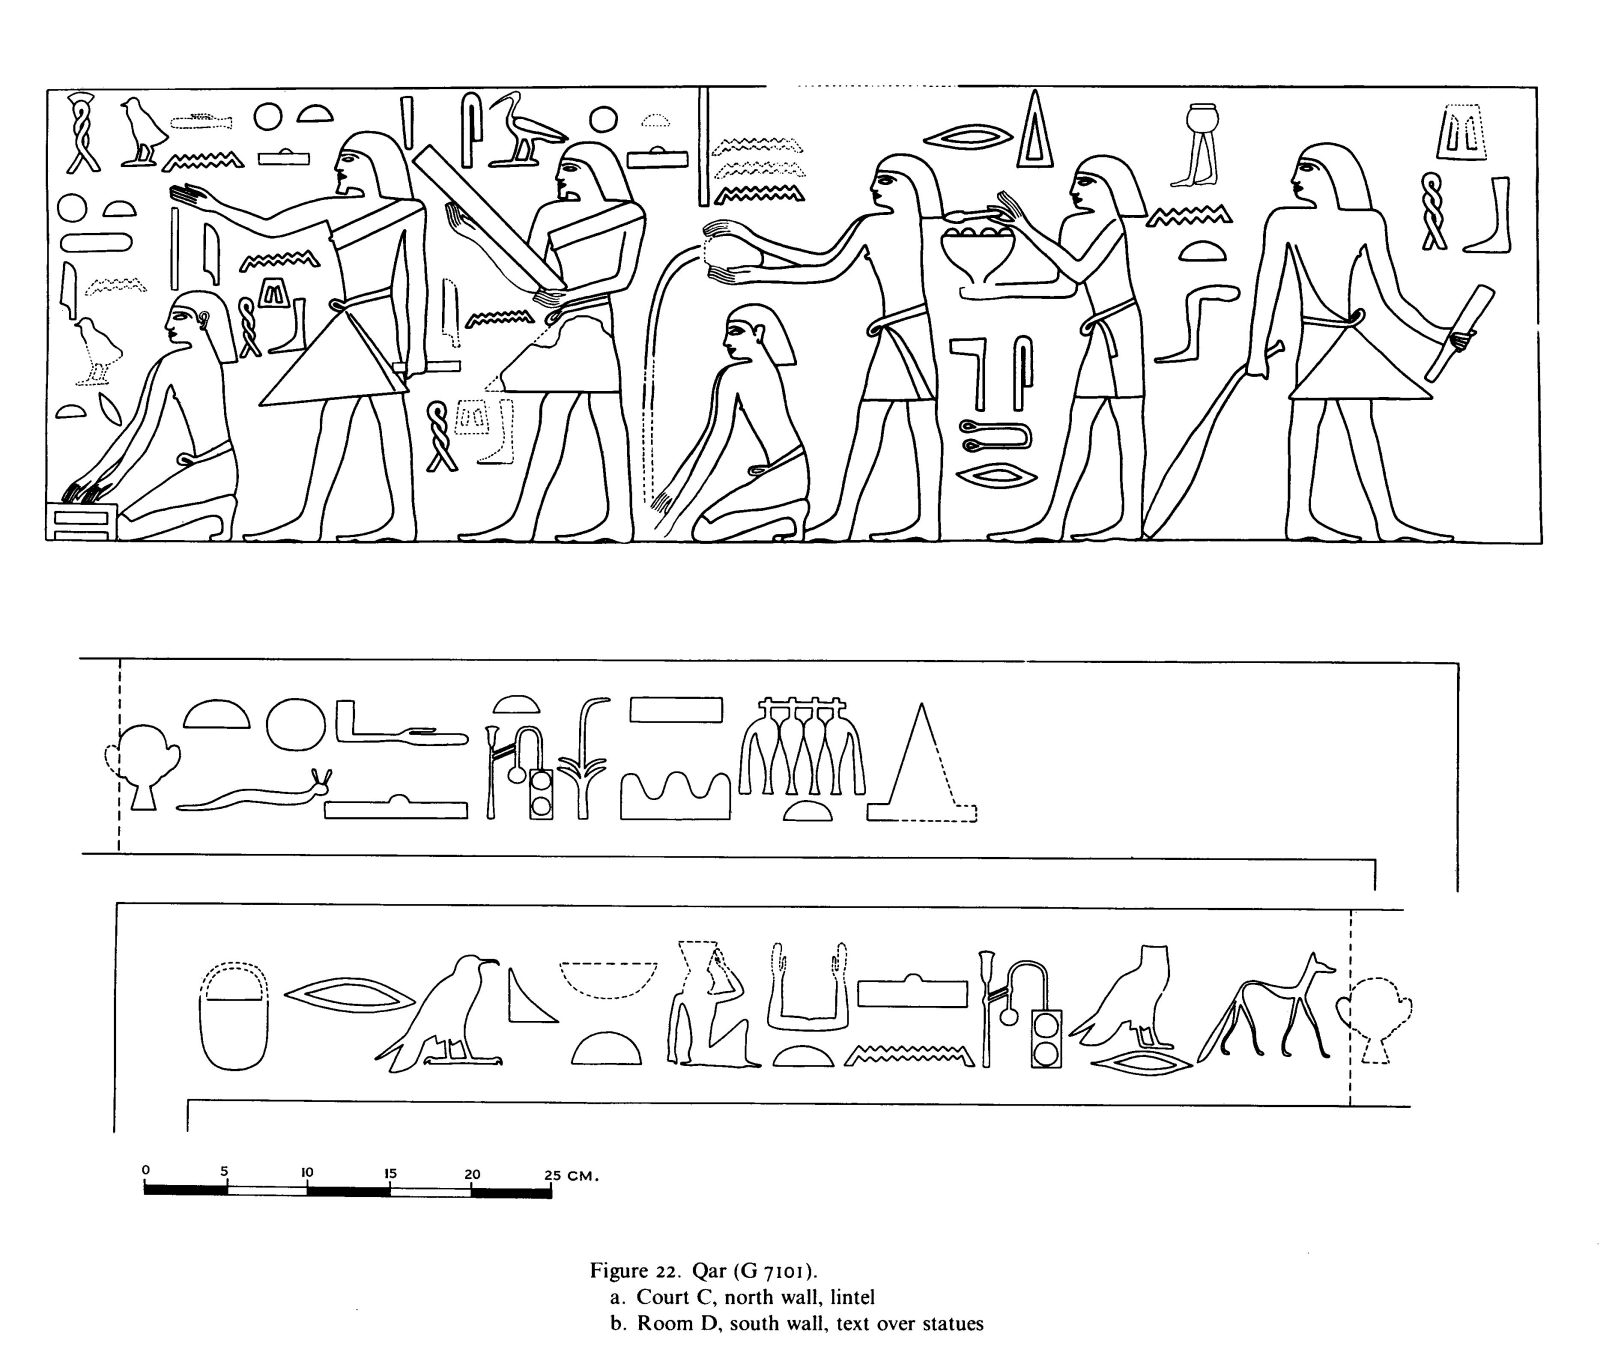 Drawings: G 7101: relief from Court C, N wall, lintel and inscriptions over statues in Room D, S wall